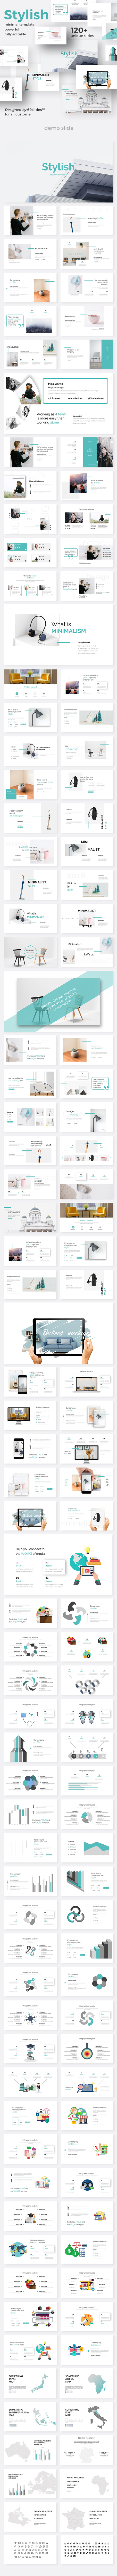 Stylish Creative Powerpoint Template - Creative PowerPoint Templates